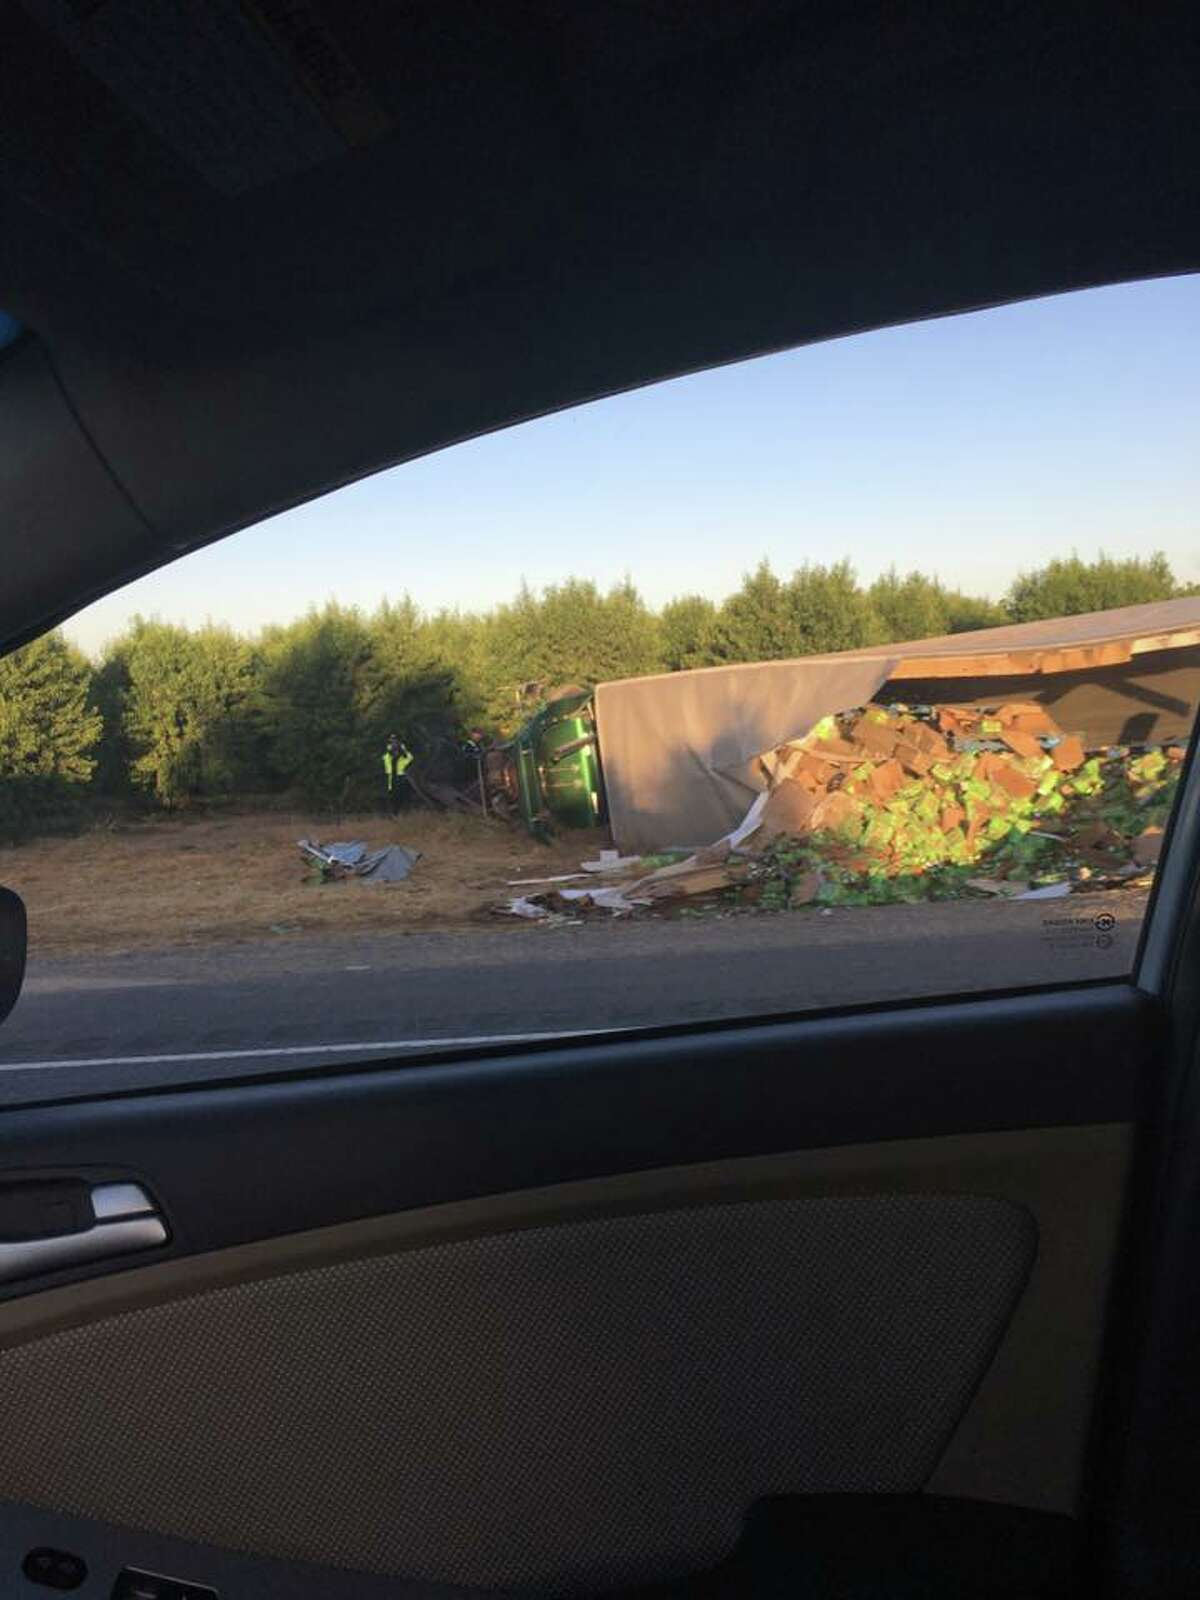 A Sierra Nevada truck carrying a load of bottled beer spilled its contents on Hwy. 99 Wednesday after colliding with a Toyota Camry early that morning.